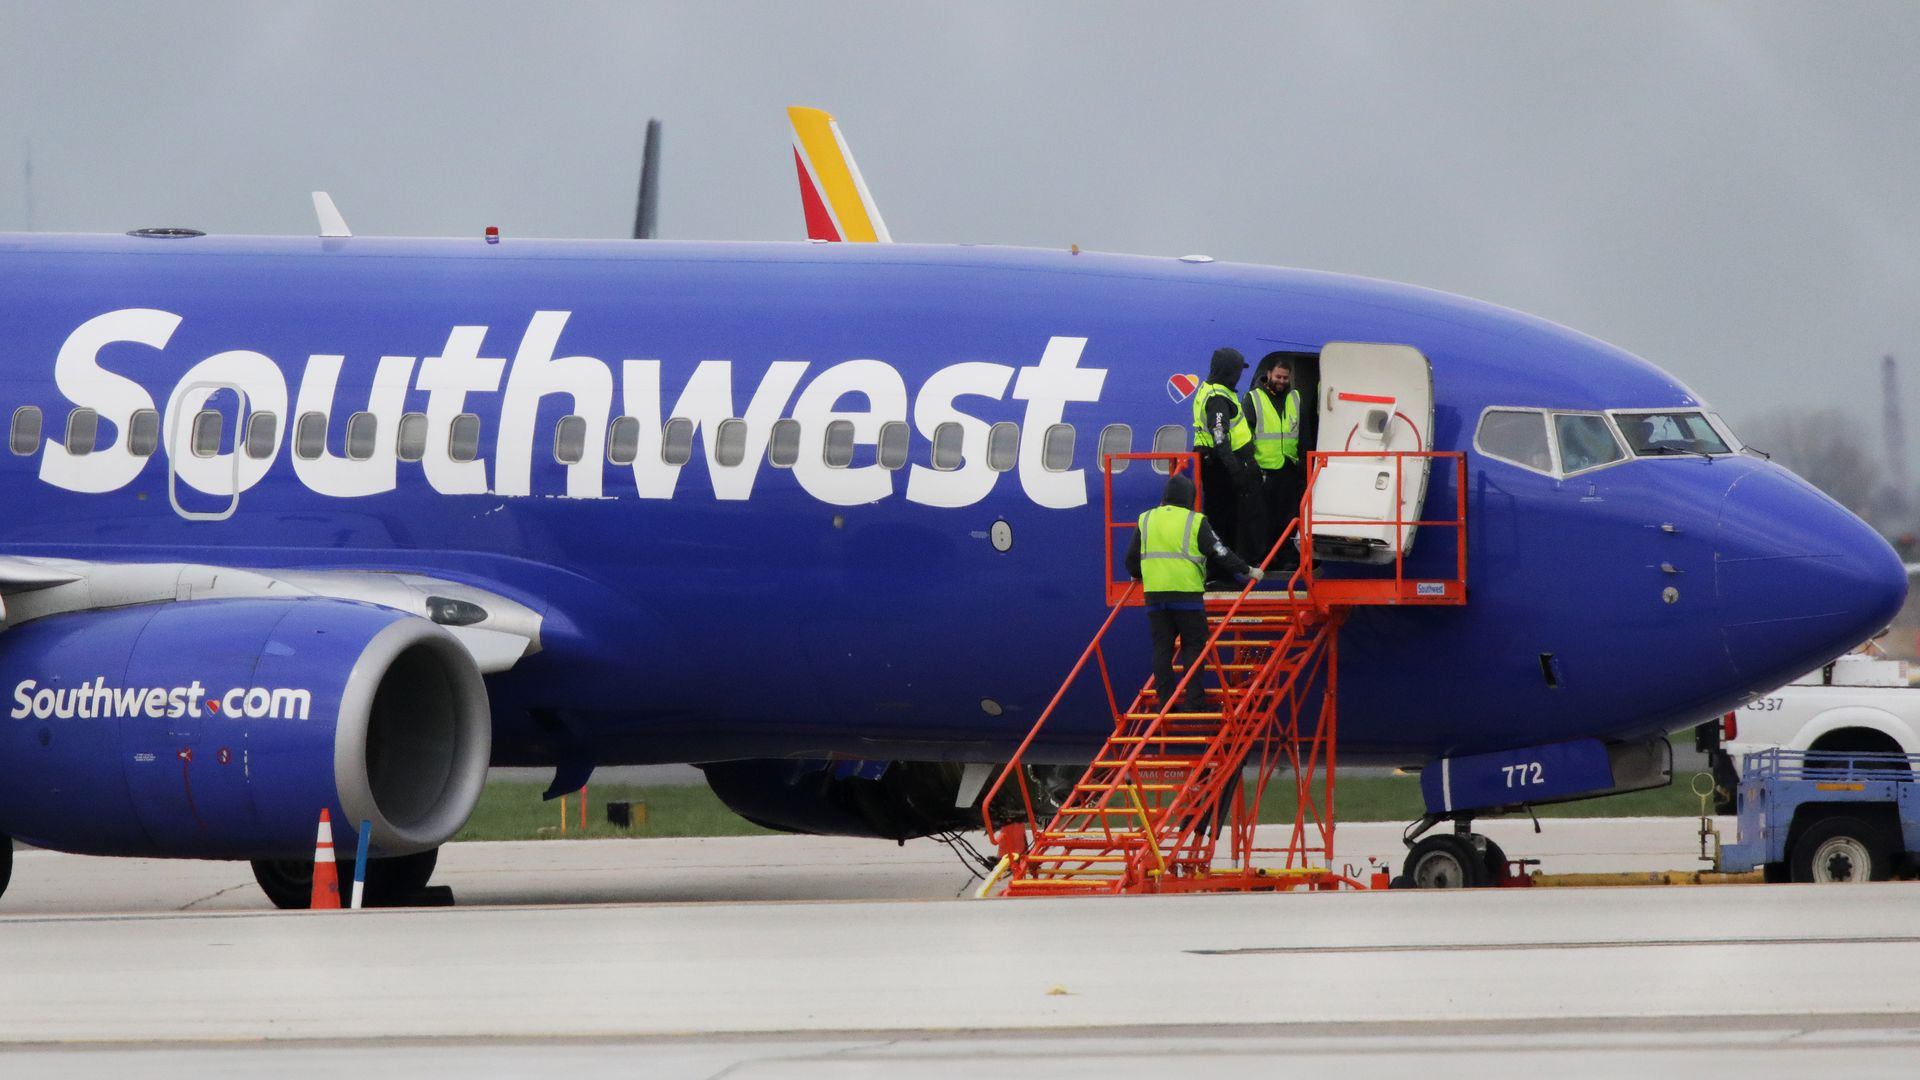 eca599b39 Southwest cancels Sunday flights for engine inspections - Axios